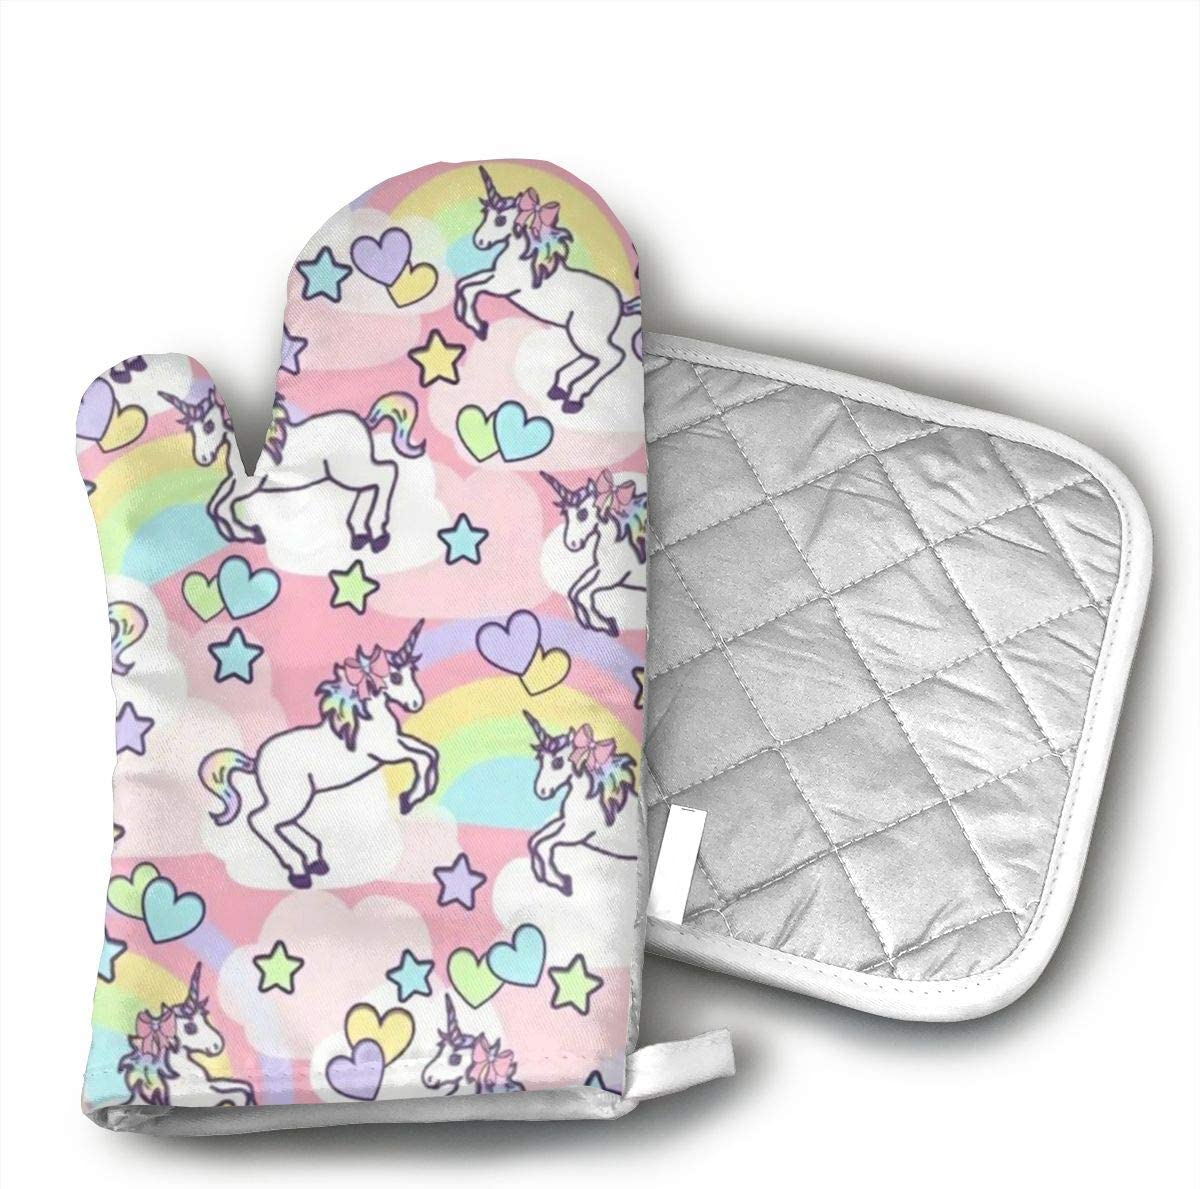 Rainbow Unicorn Oven Mitts and Potholders (2-Piece Sets) - Kitchen Set with Cotton Heat Resistant,Oven Gloves for BBQ Cooking Baking Grilling